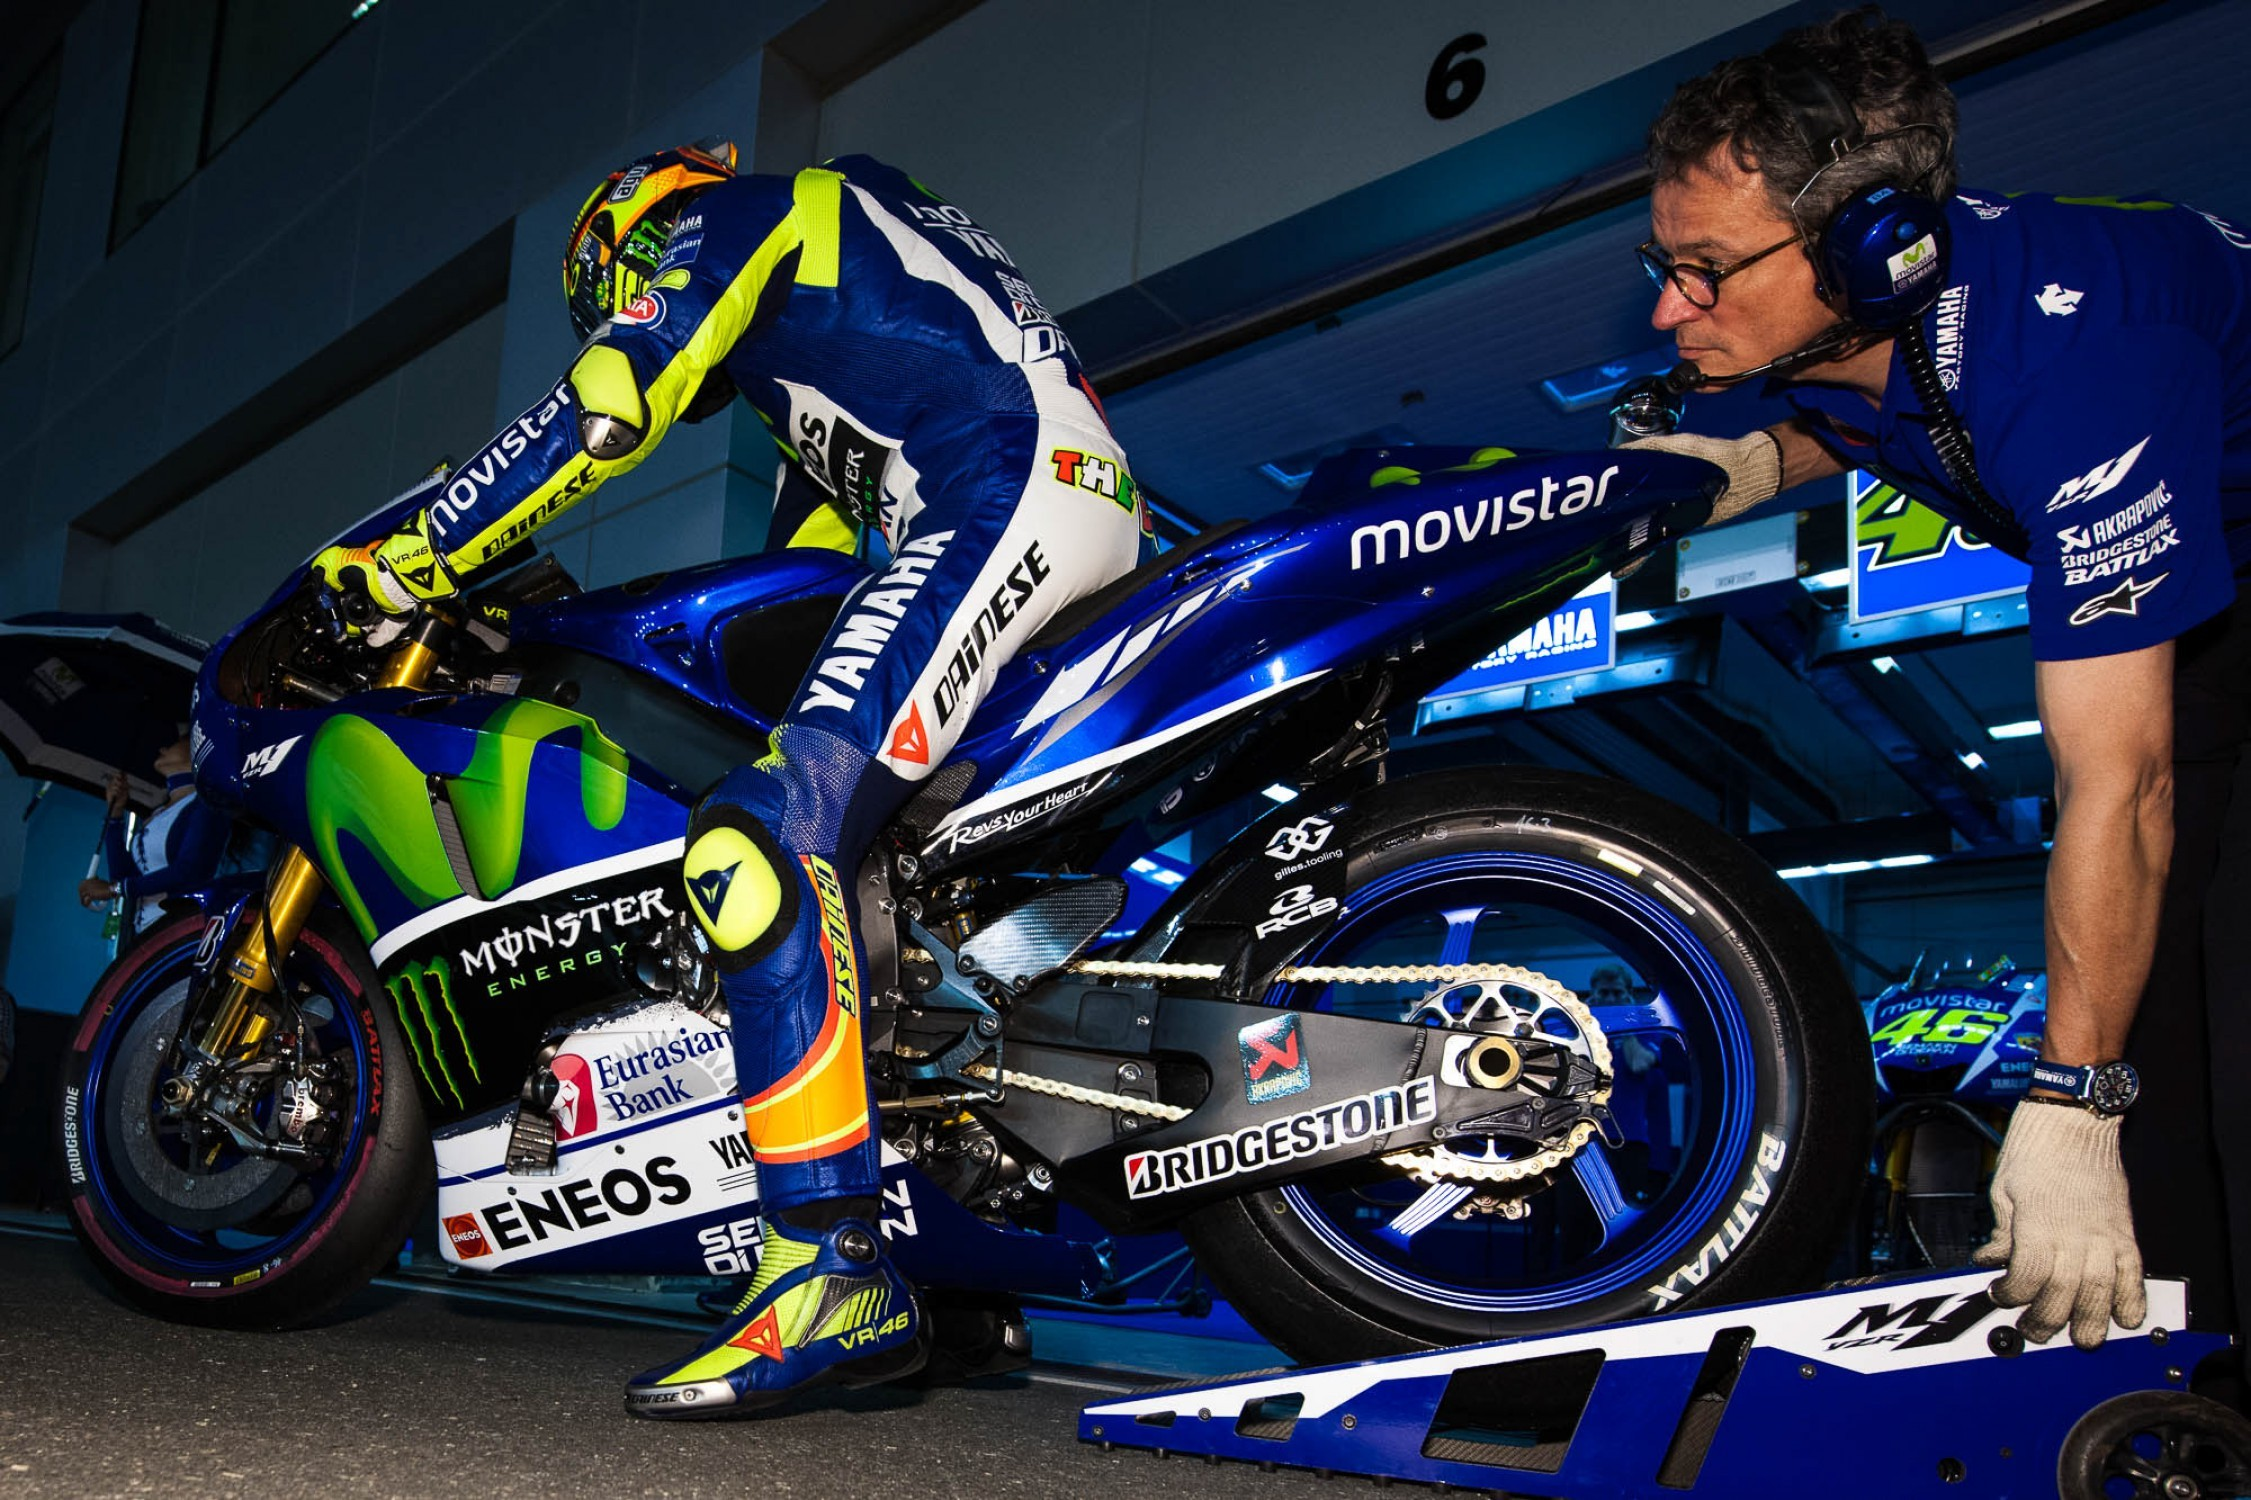 Valentino Rossi Rumored to Race at the Suzuka 8 Hours Against Casey Stoner - autoevolution